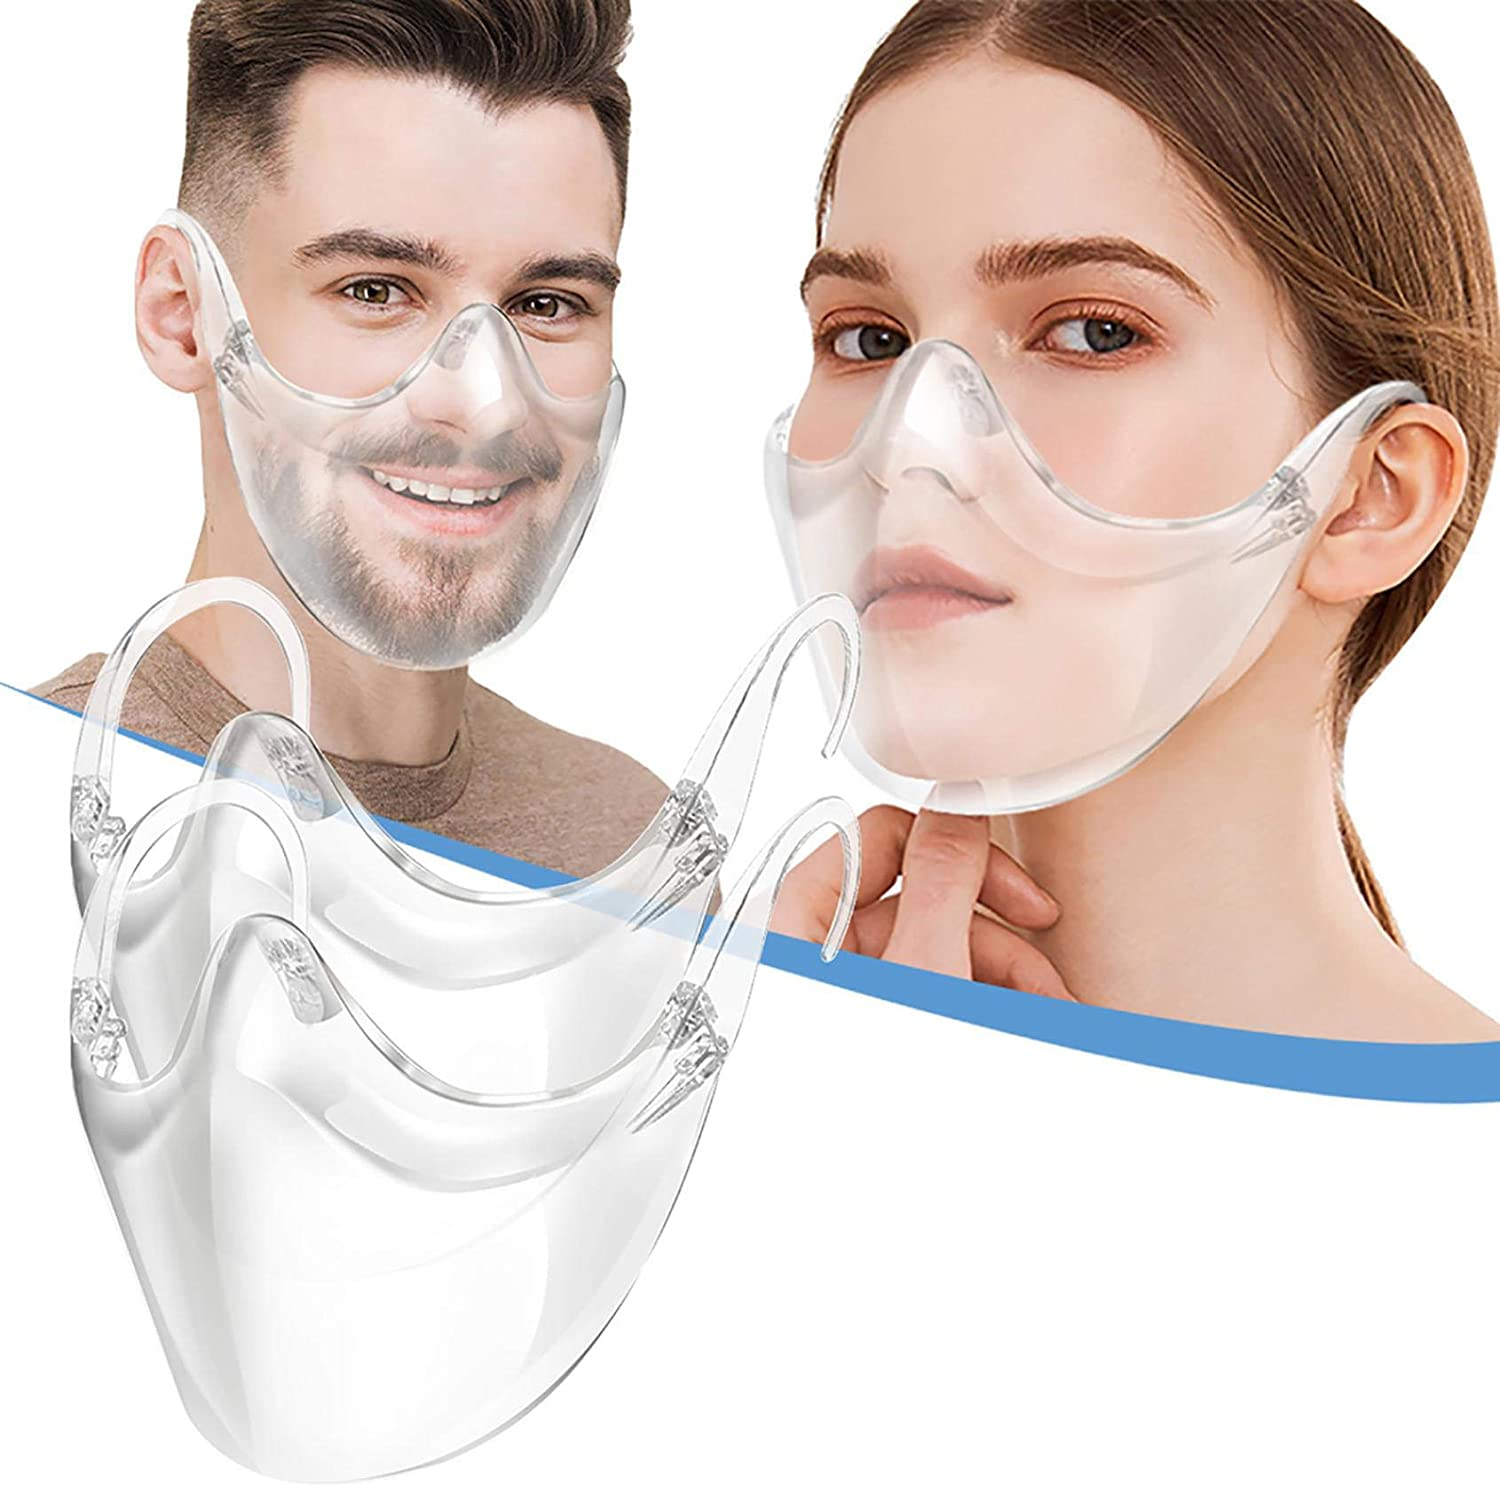 Bluego Clear Face Mask for Adult Plastic Mask with Clear Mouth Window Transparent Visible Expression Comfortable Washable Reusable Full Face Shield Protection